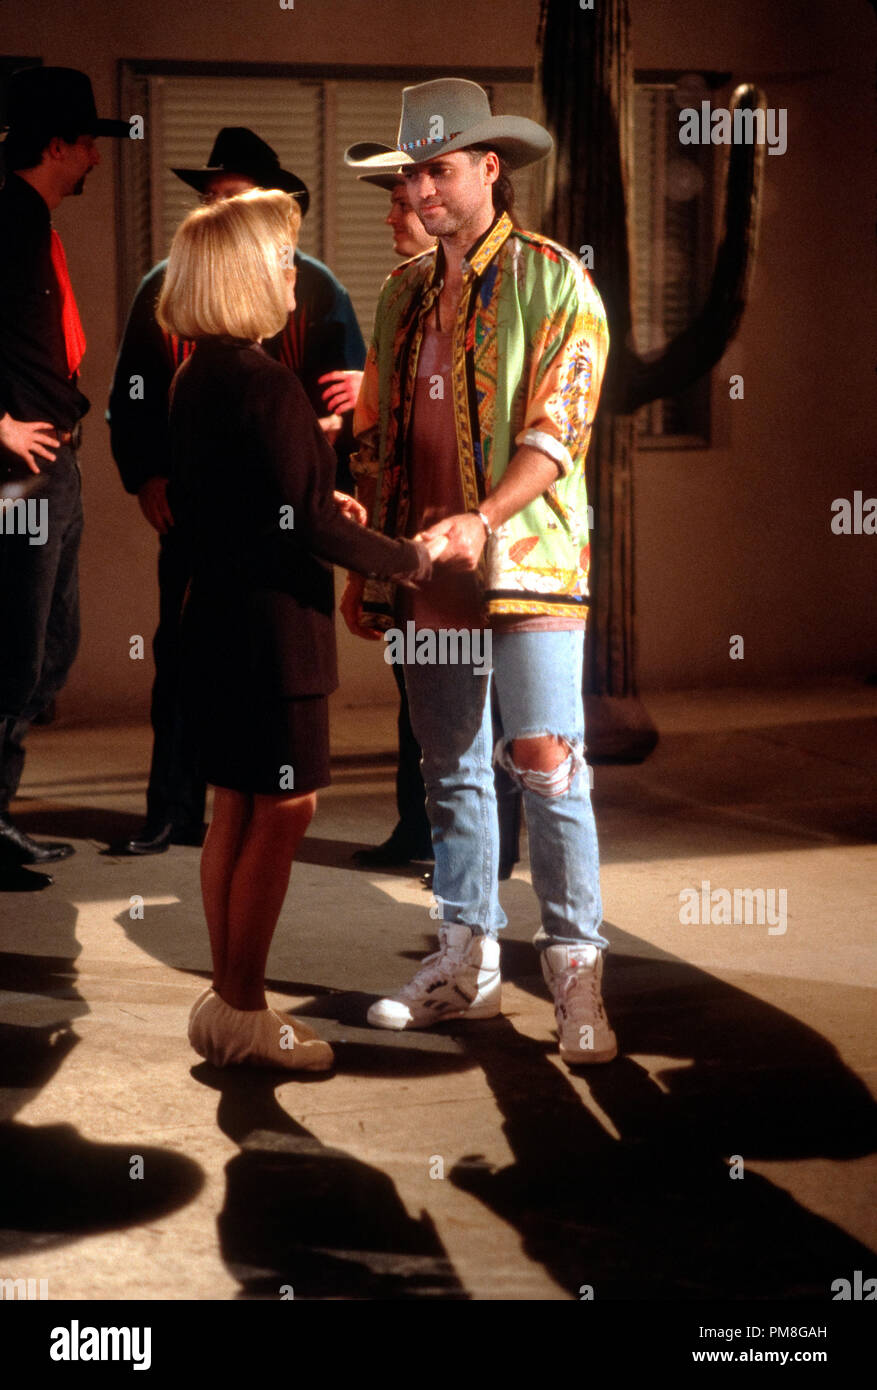 Film still / publicity still from 'Diagnosis Murder' Billy Ray Cyrus, Swoozie Kurtz circa 1993 CBS   File Reference # 31371316THA  For Editorial Use Only All Rights Reserved - Stock Image